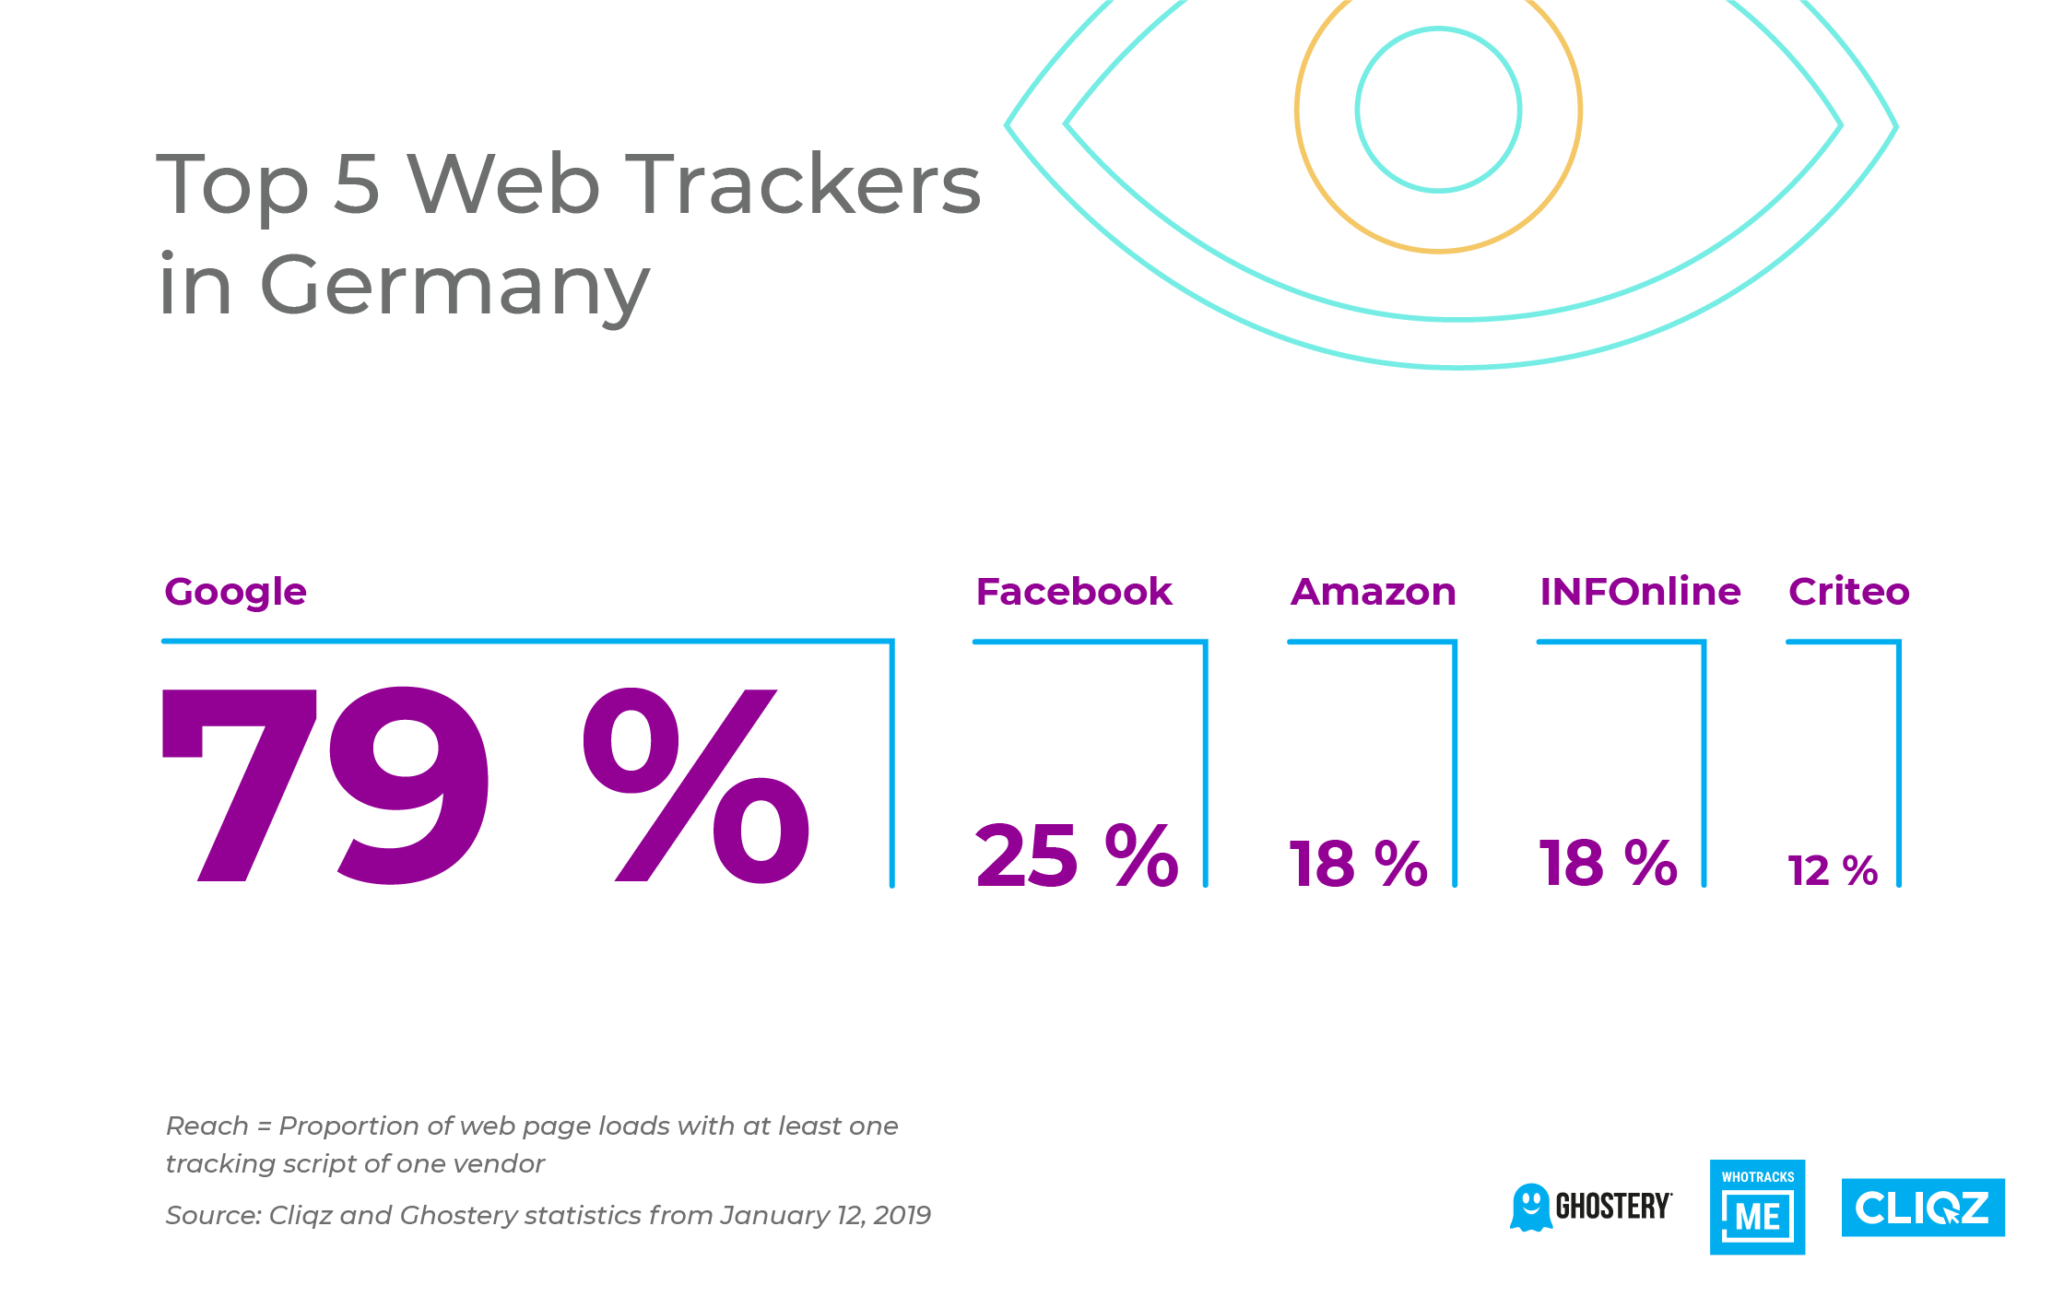 Top 5 Web Trackers in Germany